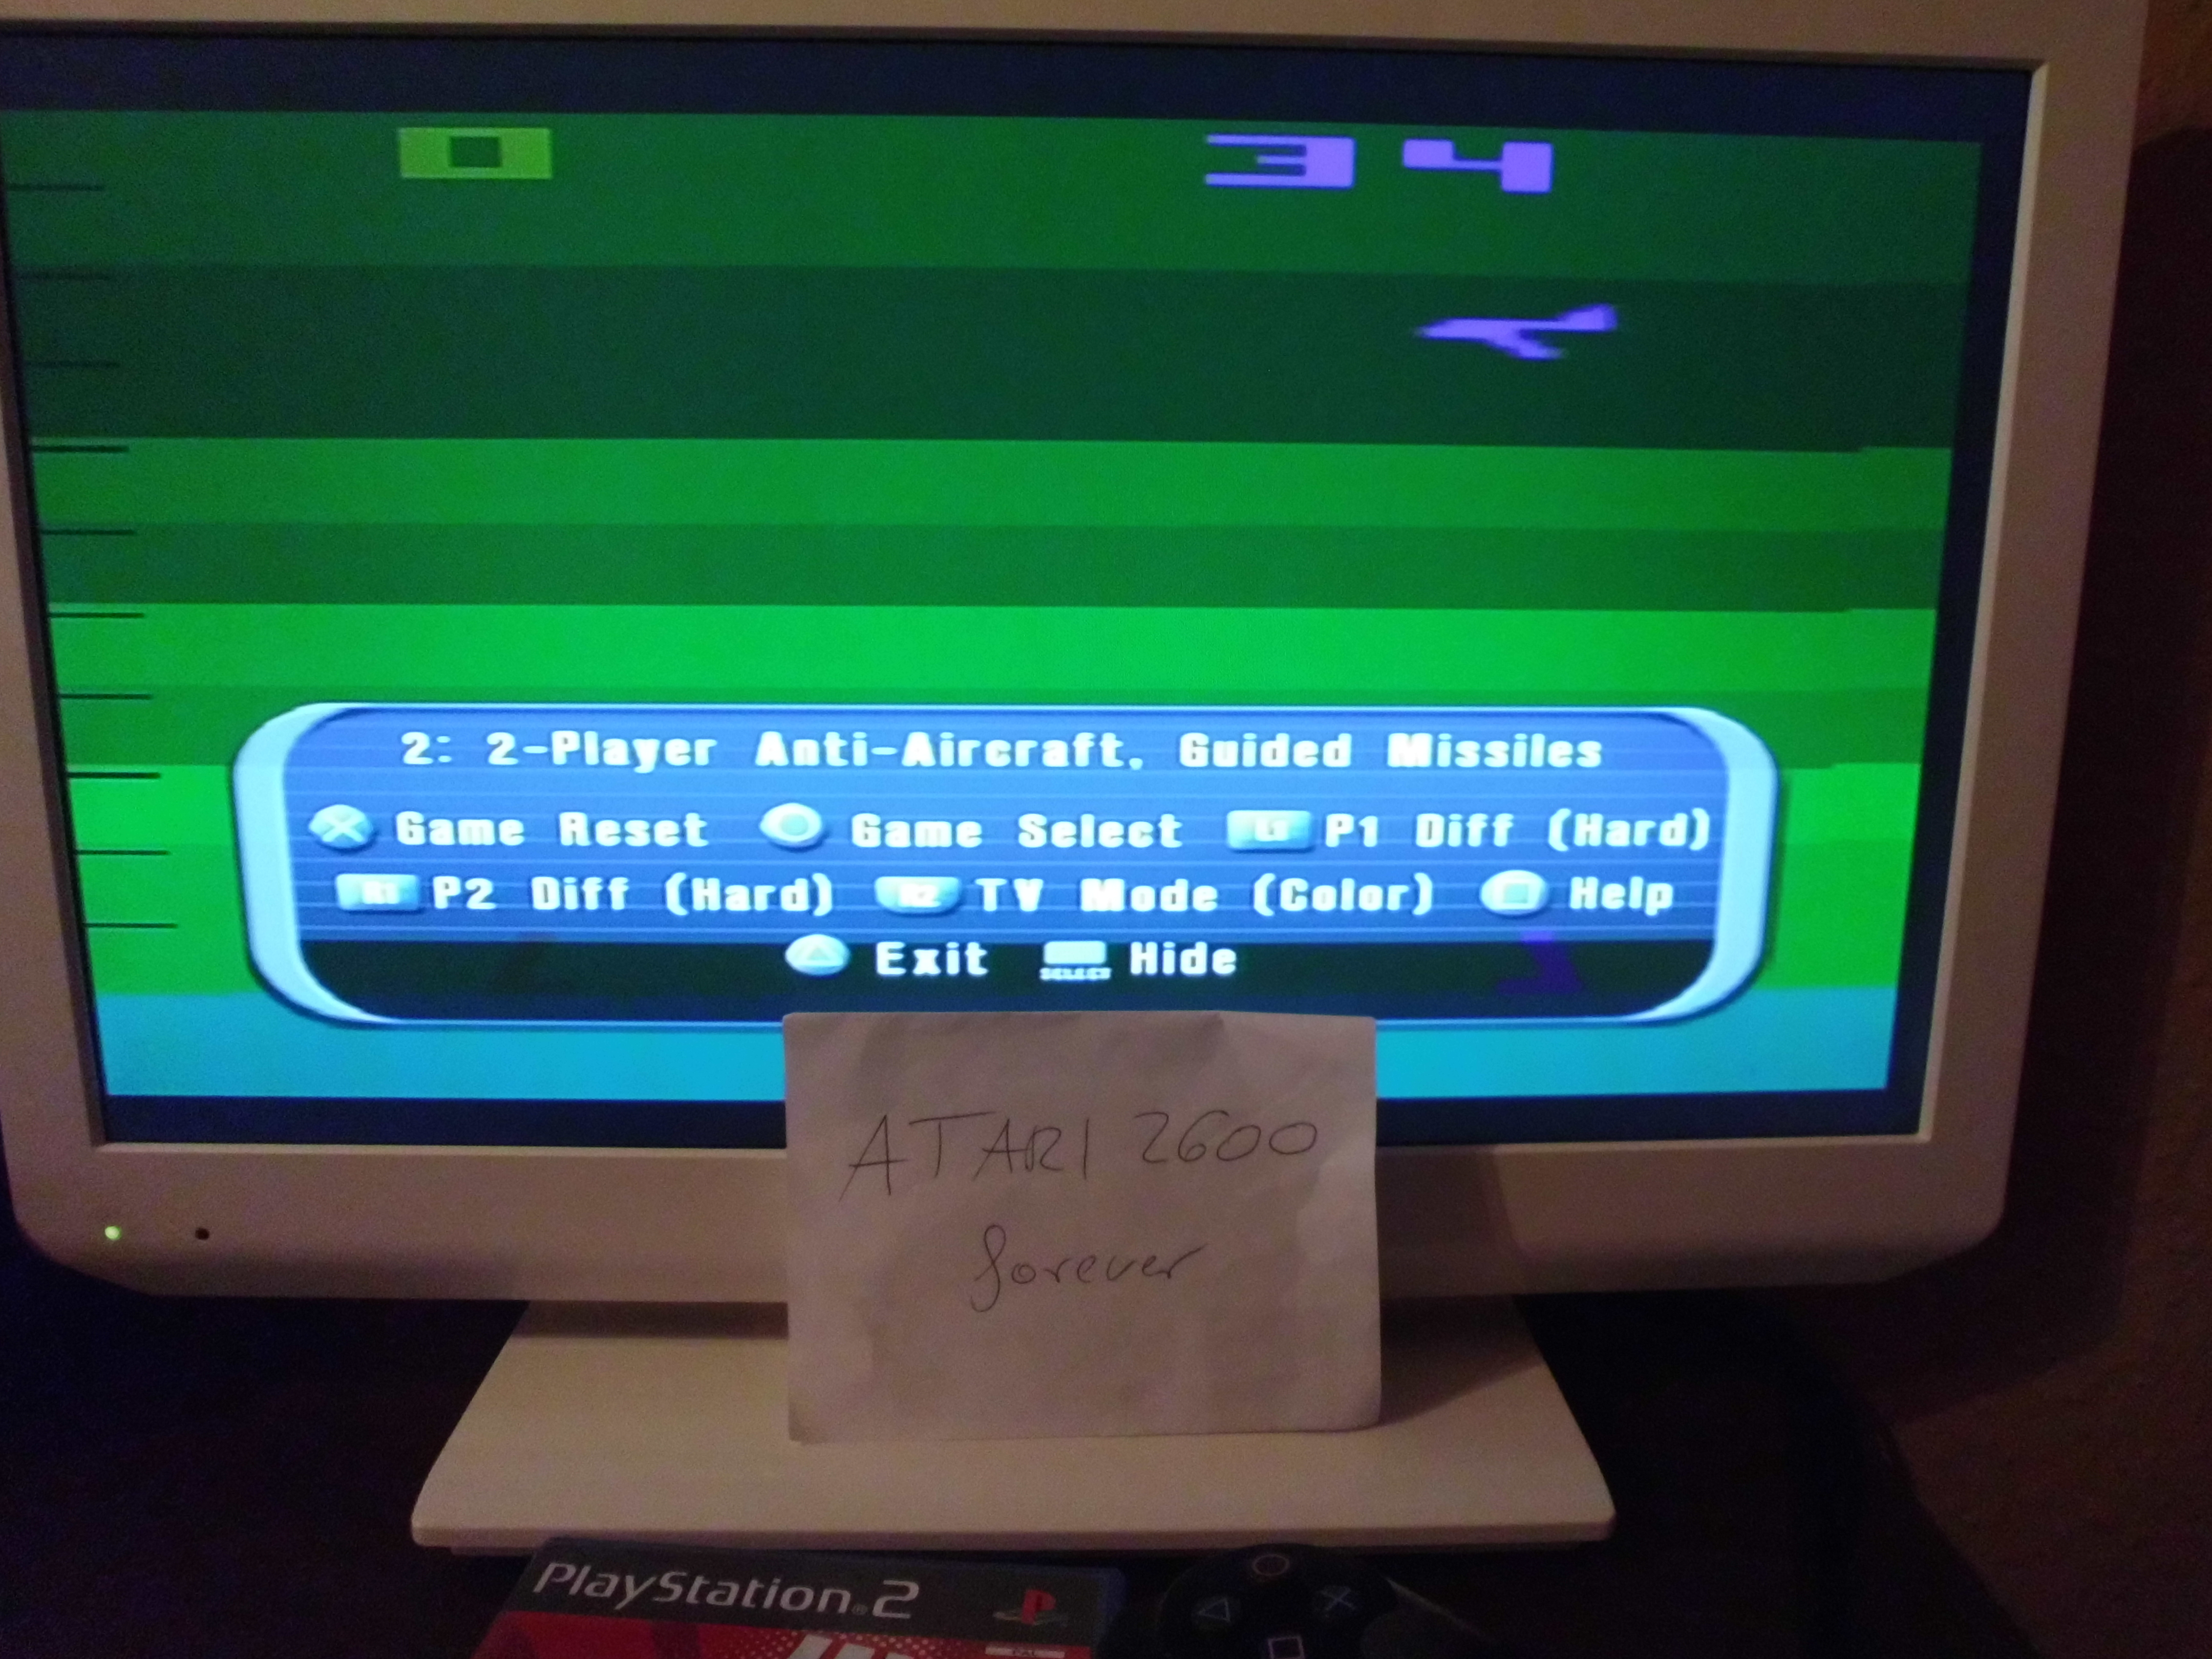 atari2600forever: Atari Anthology: Air-Sea Battle [Game 2A] (Playstation 2) 34 points on 2018-03-26 09:02:15